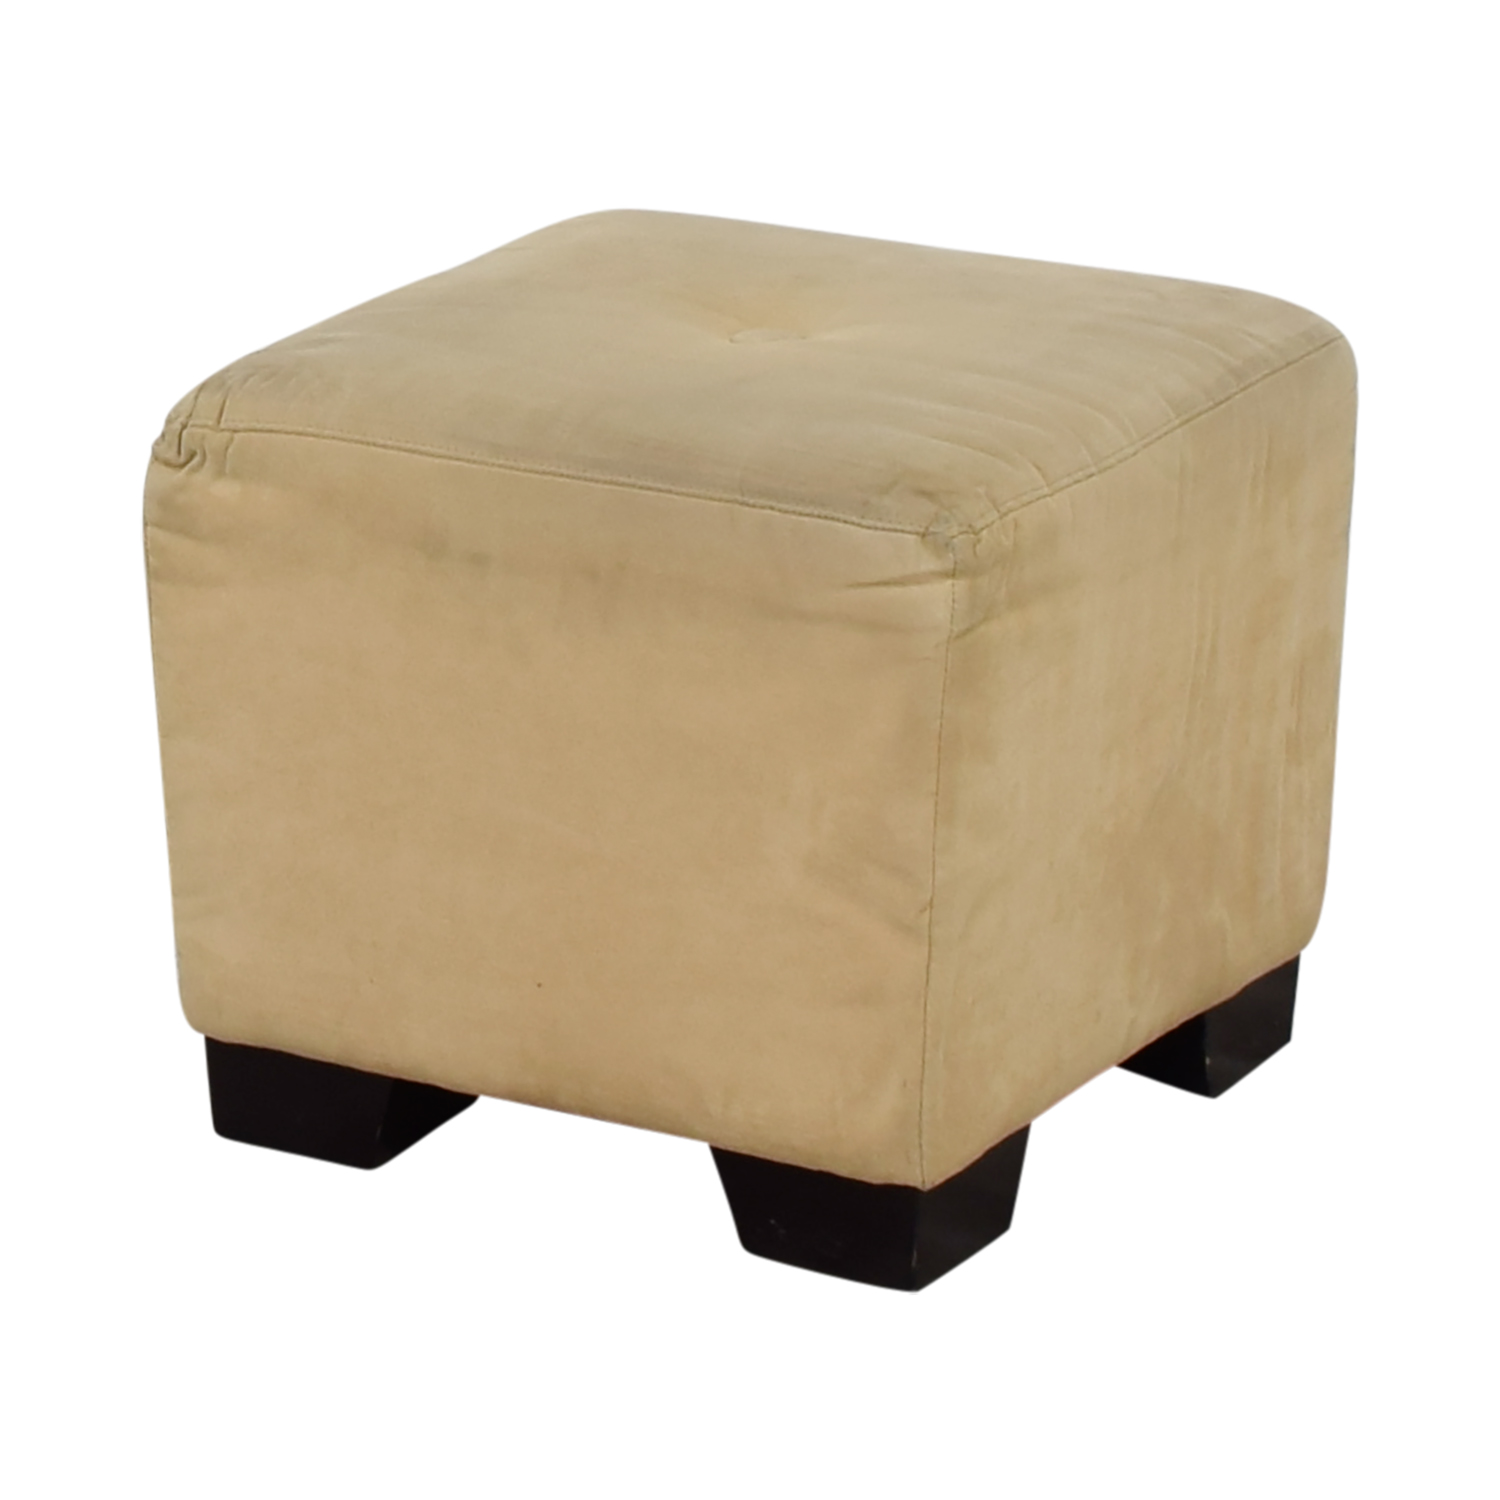 Remarkable 90 Off Sherrill Furniture Sherrill Furniture Beige Square Ottoman Chairs Cjindustries Chair Design For Home Cjindustriesco